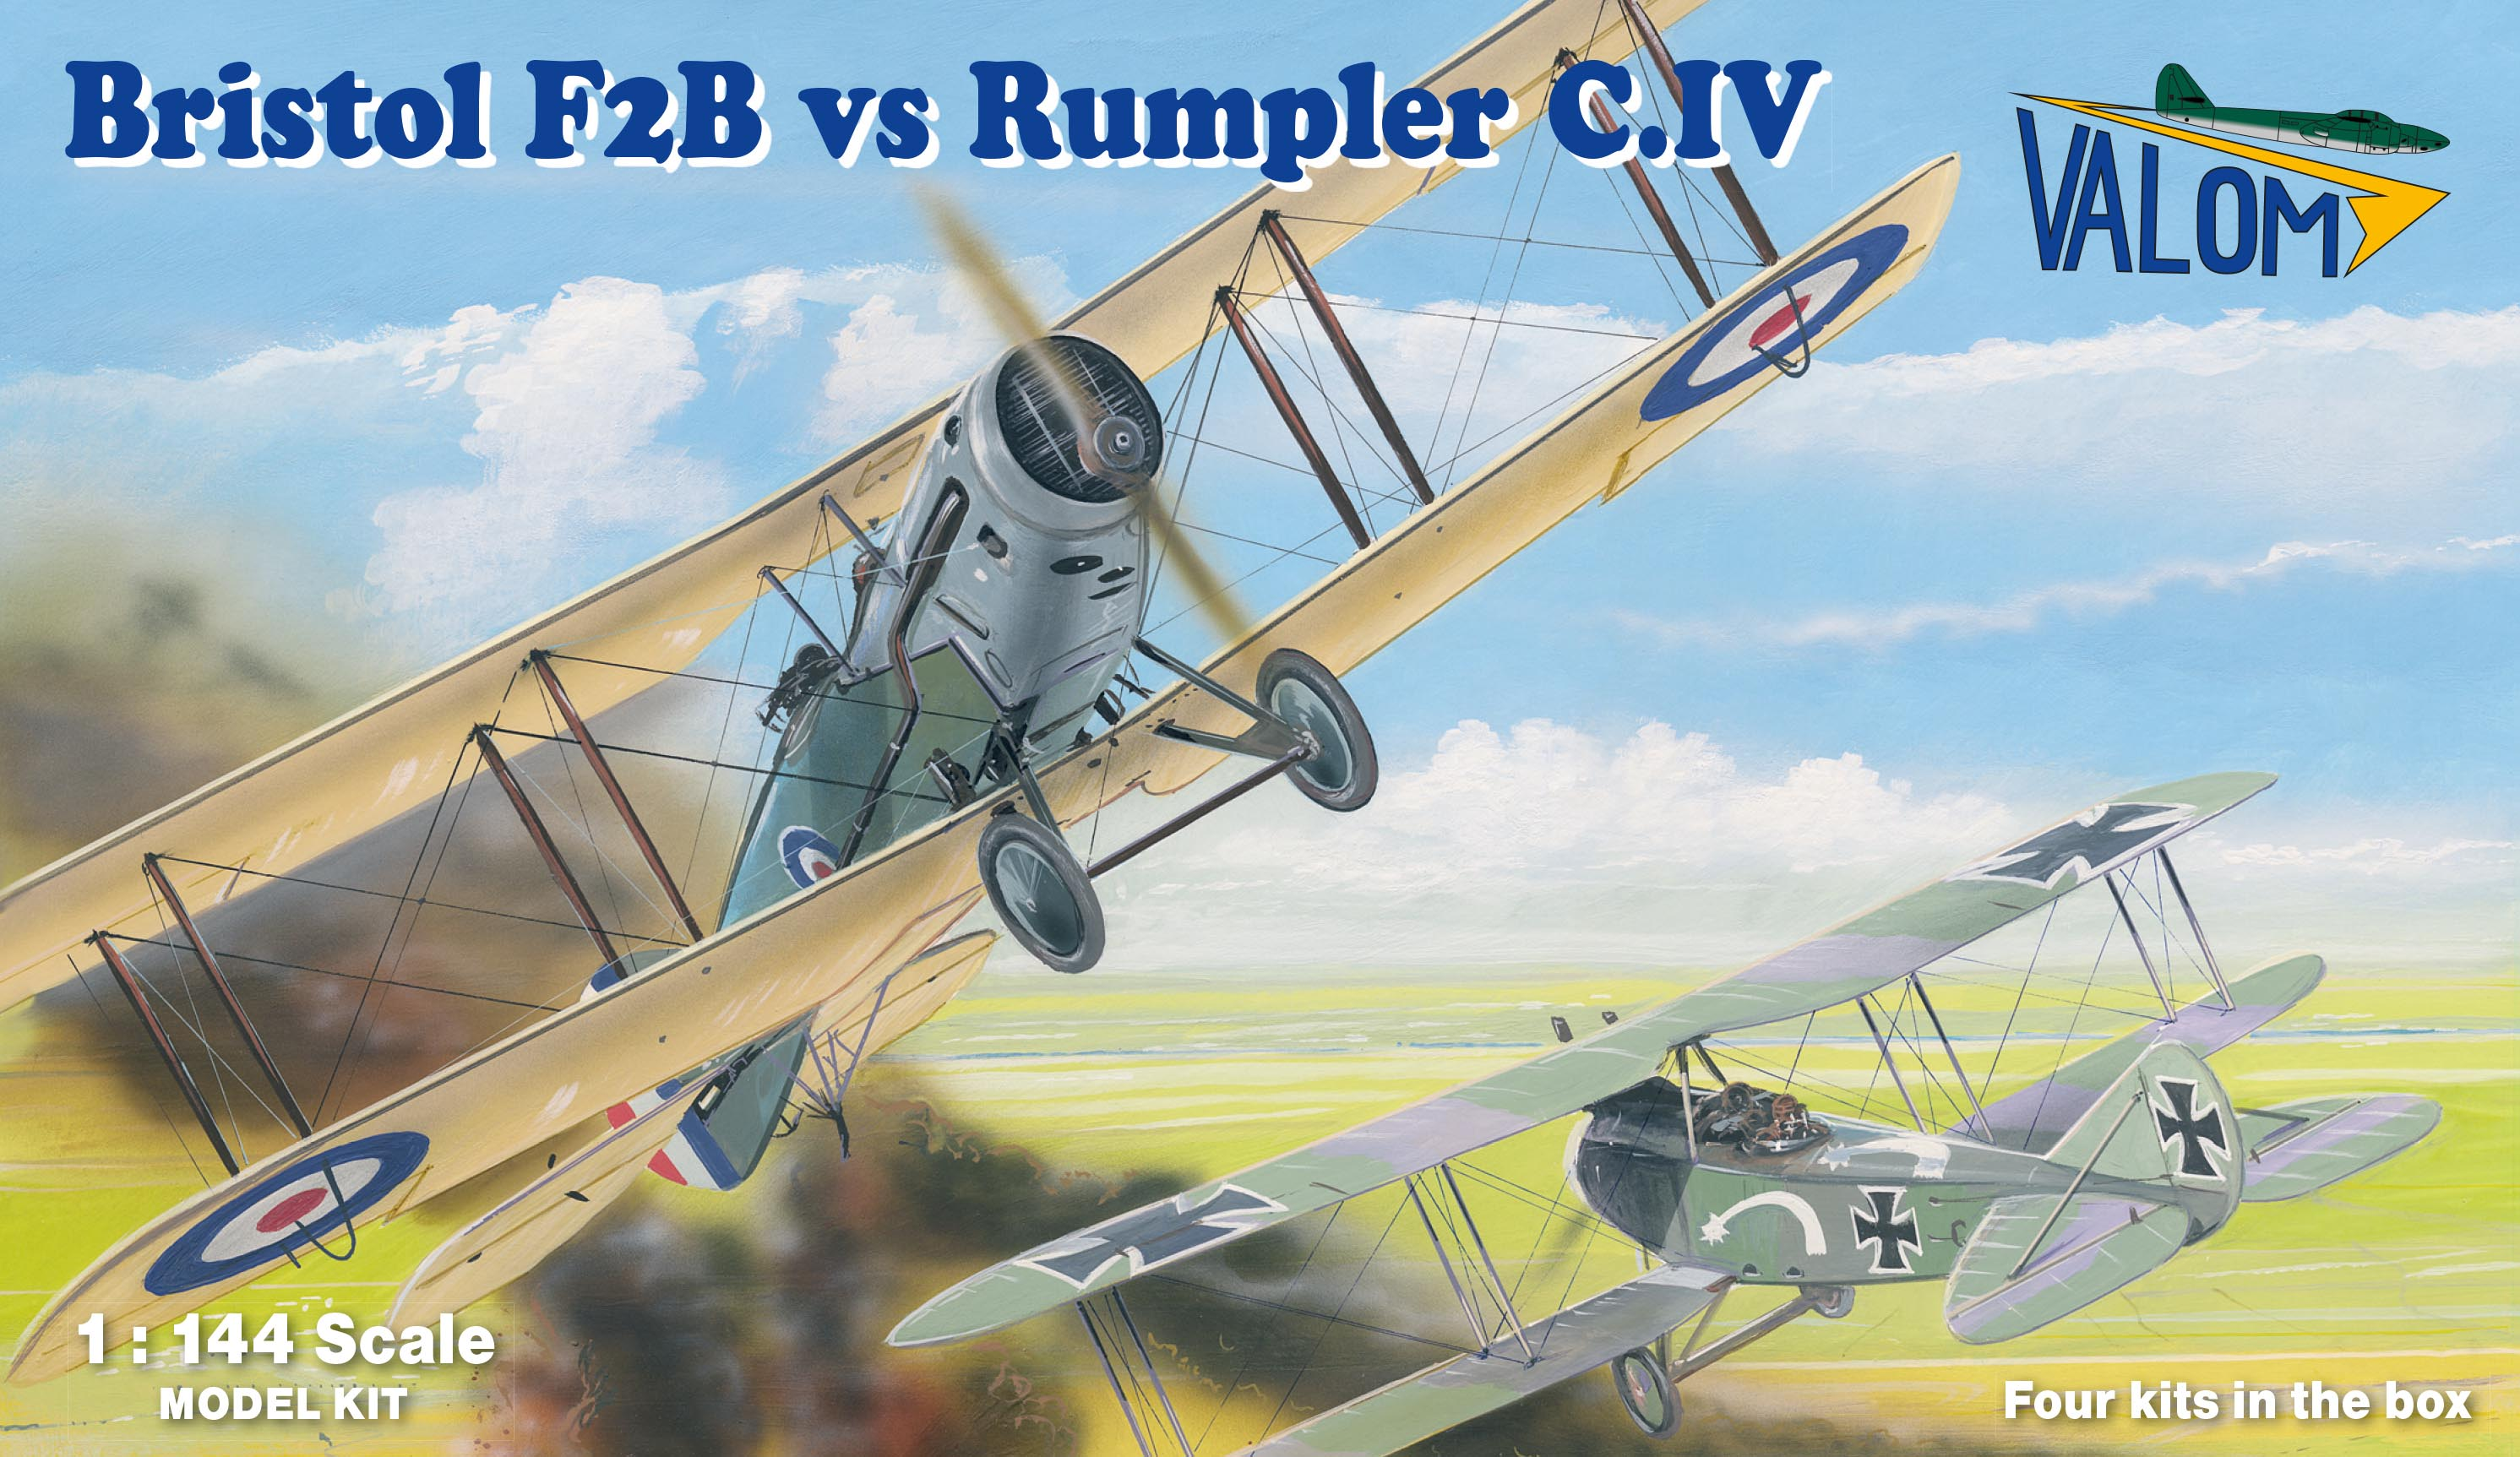 Valom Bristol F2B vs Rumpler C.IV (Duels in the sky))